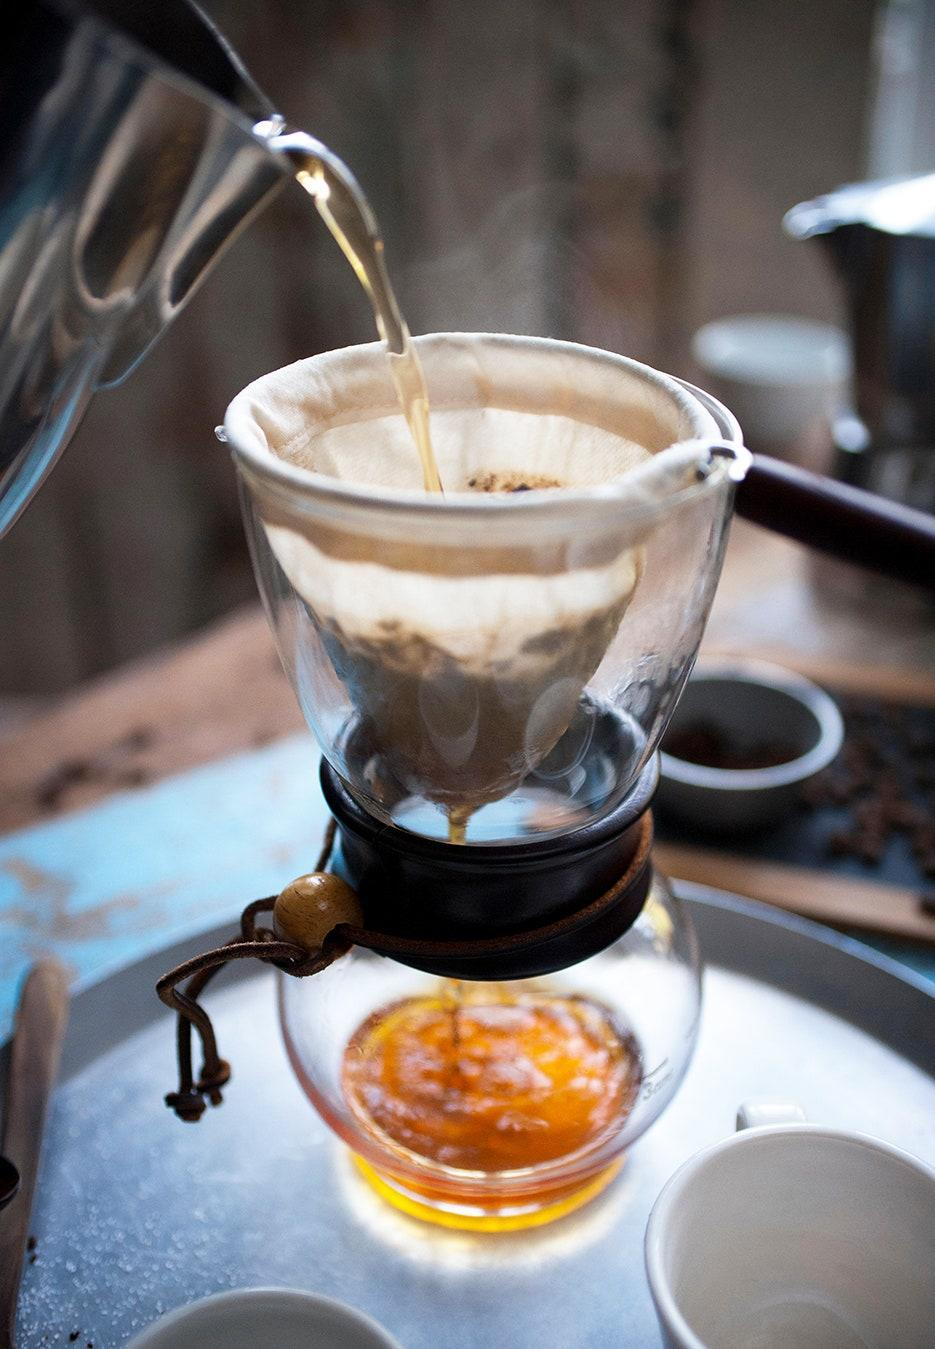 """<p>While many of the drinks above are similarly creamy or sugary, this signature Seganalese beverage is spicy. Cafè Touba can be found throughout Senegal, especially in <a href=""""https://www.cntraveler.com/story/in-dakar-senegal-a-long-weekend-of-surfing-and-live-music?mbid=synd_yahoo_rss"""" rel=""""nofollow noopener"""" target=""""_blank"""" data-ylk=""""slk:Dakar"""" class=""""link rapid-noclick-resp"""">Dakar</a>, at Touba stands. Cafè Touba is brewed with cloves or with spicy Guinea pepper (also called grains of paradise), a West African specialty that combines a black pepper-like heat with a fragrance similar to cardamom. Touba also comes with a generous helping of sugar, making for a wonderfully sweet (and spicy) cup.</p> <p><strong>Try it at home:</strong> $26, 8-oz. Grains of Paradise spice at <a href=""""https://fave.co/2ye7p9M"""" rel=""""nofollow noopener"""" target=""""_blank"""" data-ylk=""""slk:thespicehouse.com"""" class=""""link rapid-noclick-resp"""">thespicehouse.com</a></p>"""